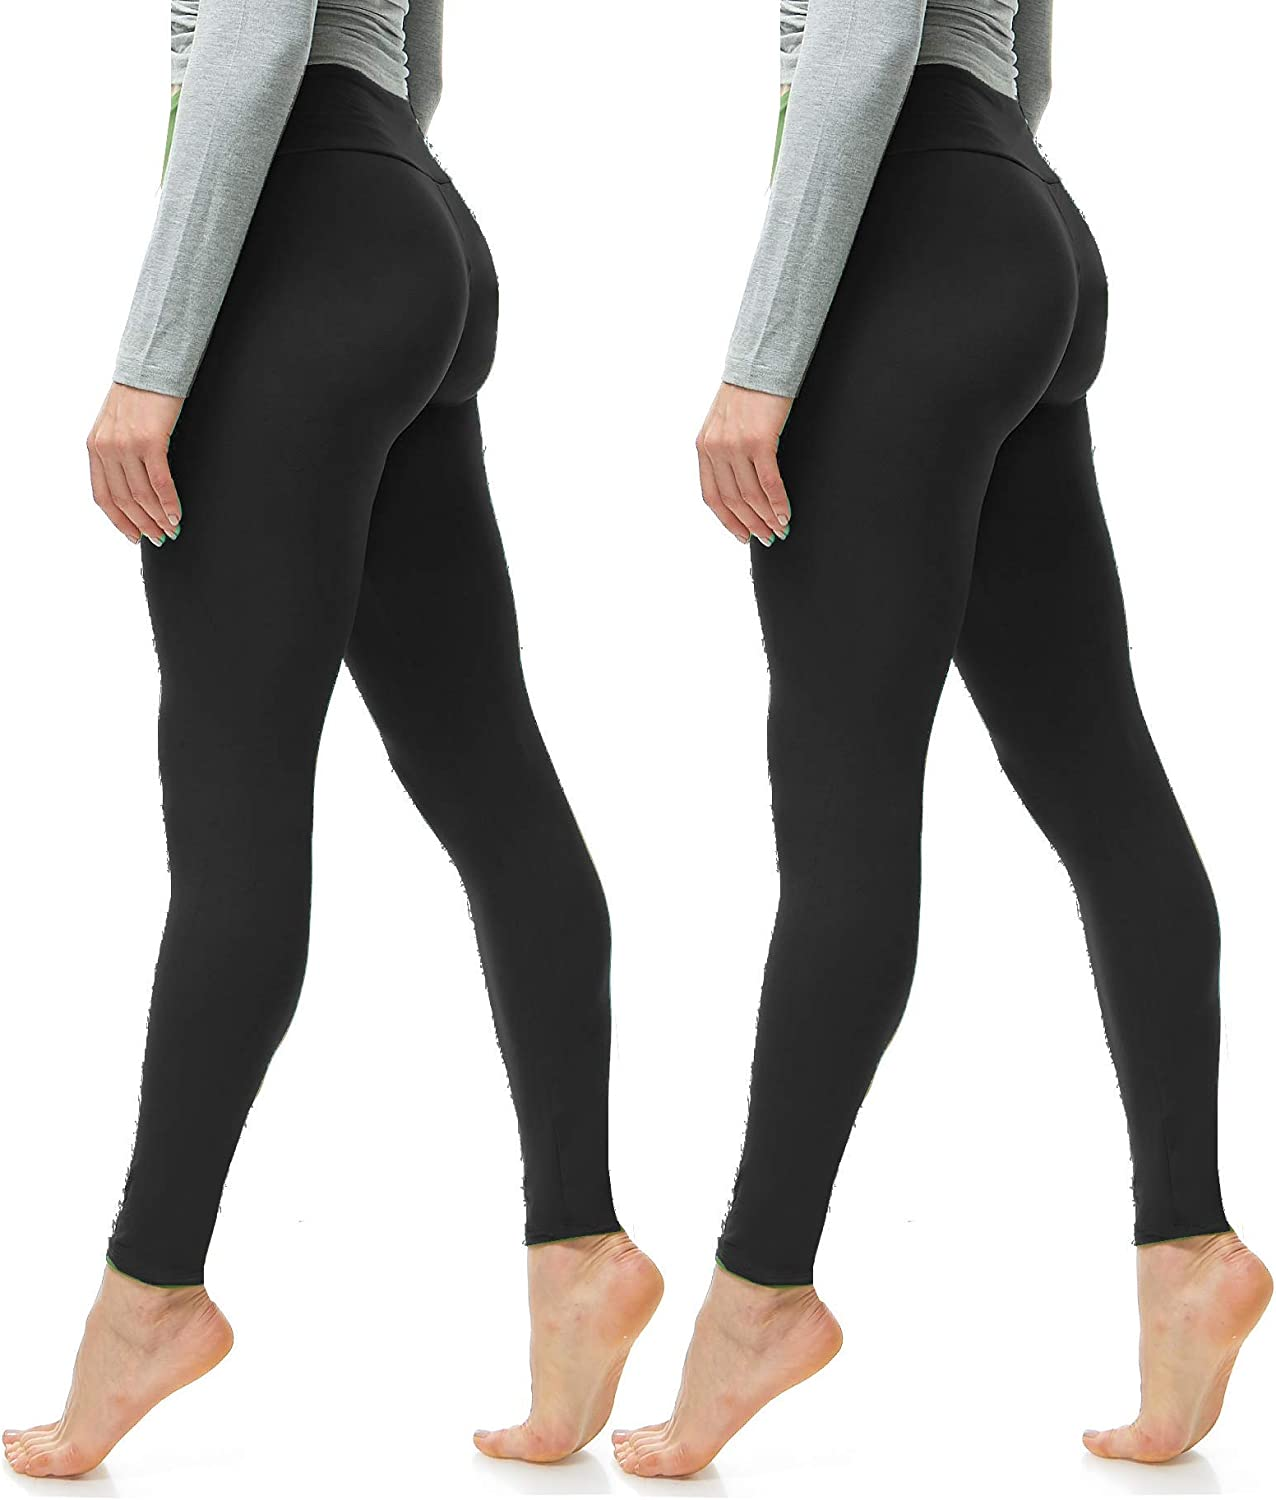 Luxurious Quality High Waisted Leggings for Women Workout /& Yoga Pants Plus